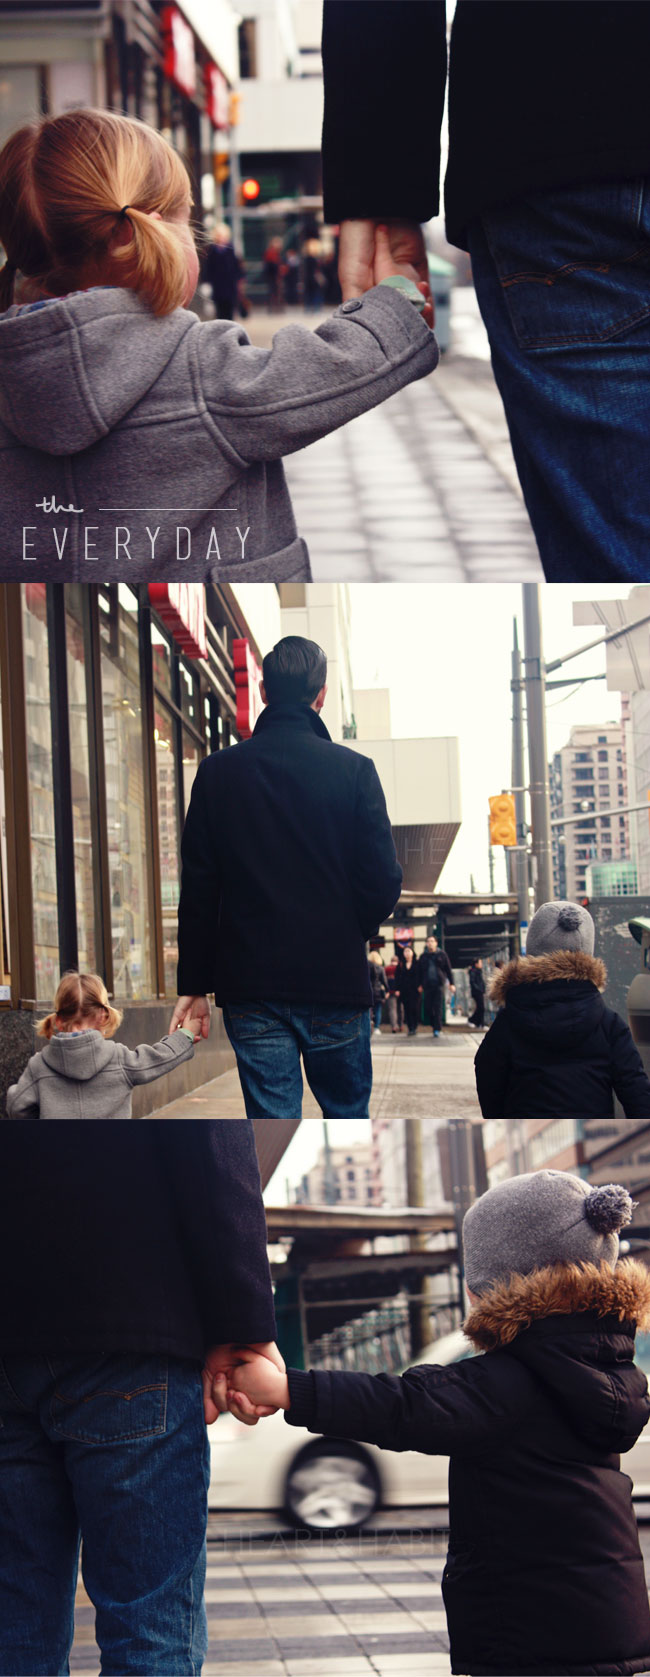 the everyday moments, the small things, enjoying life, holding dads hands, urban family